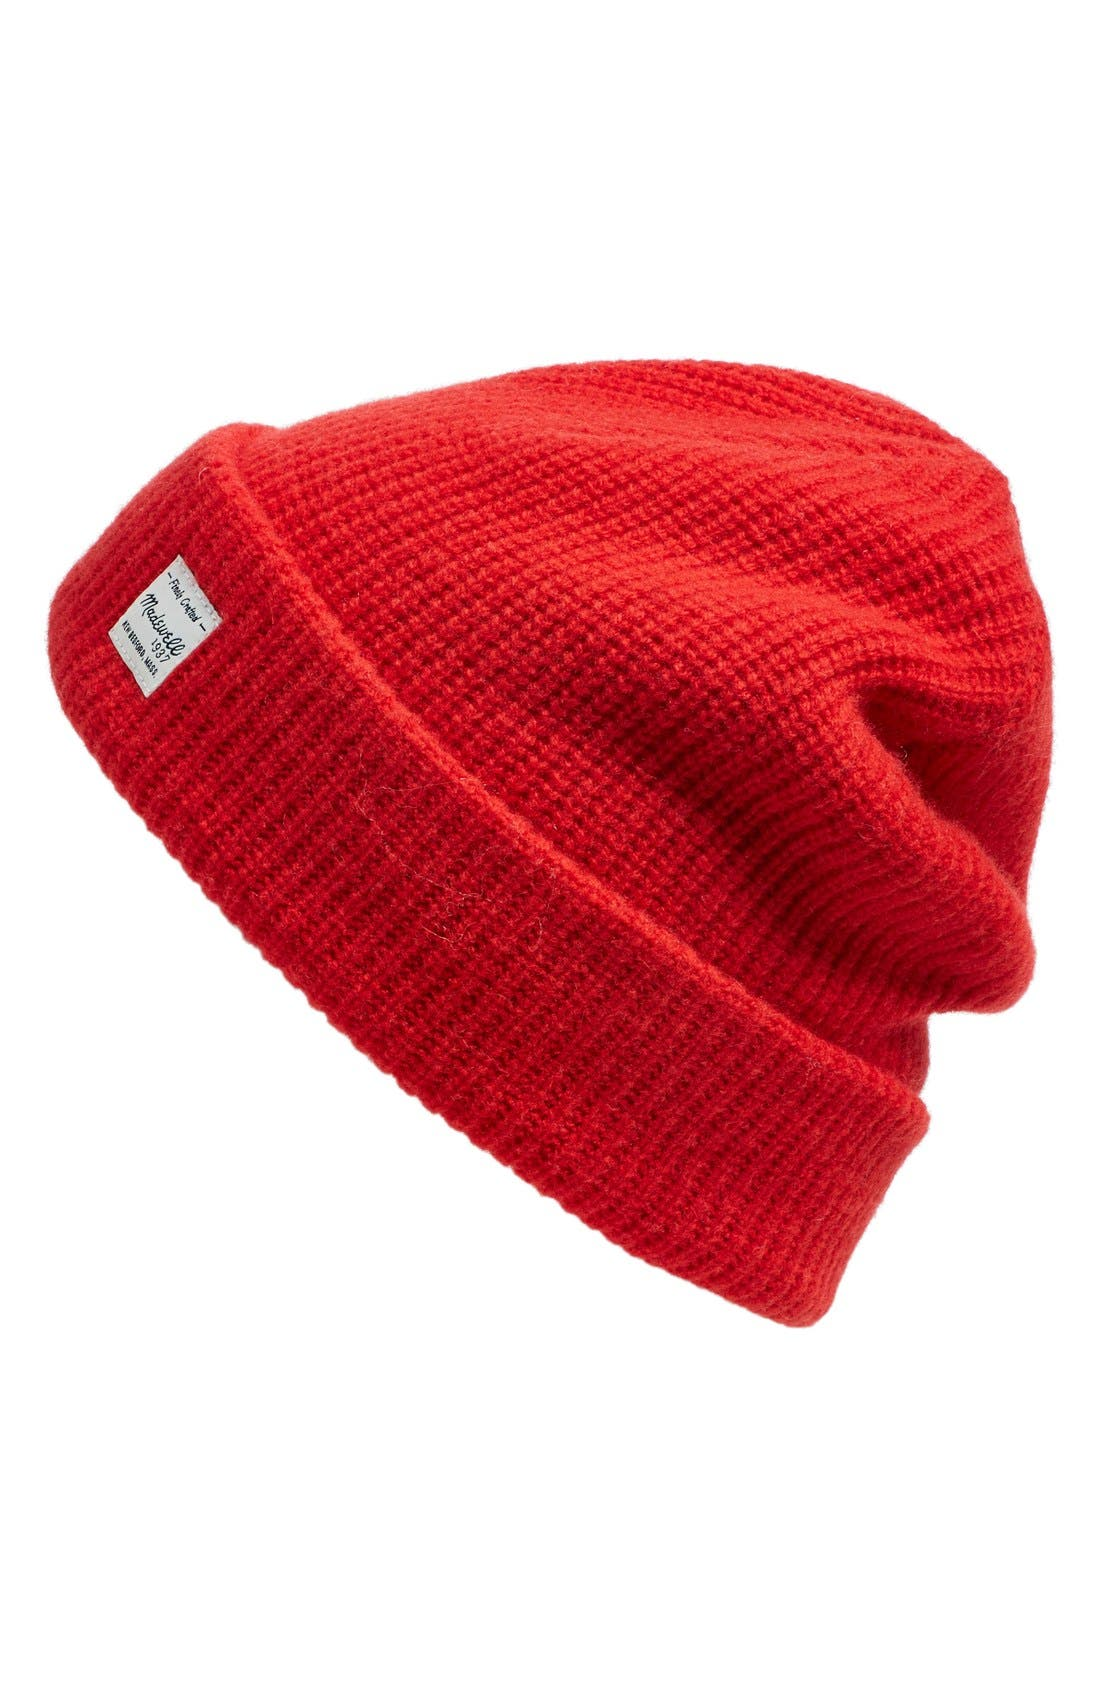 Alternate Image 1 Selected - Madewell Slouchy Knit Beanie